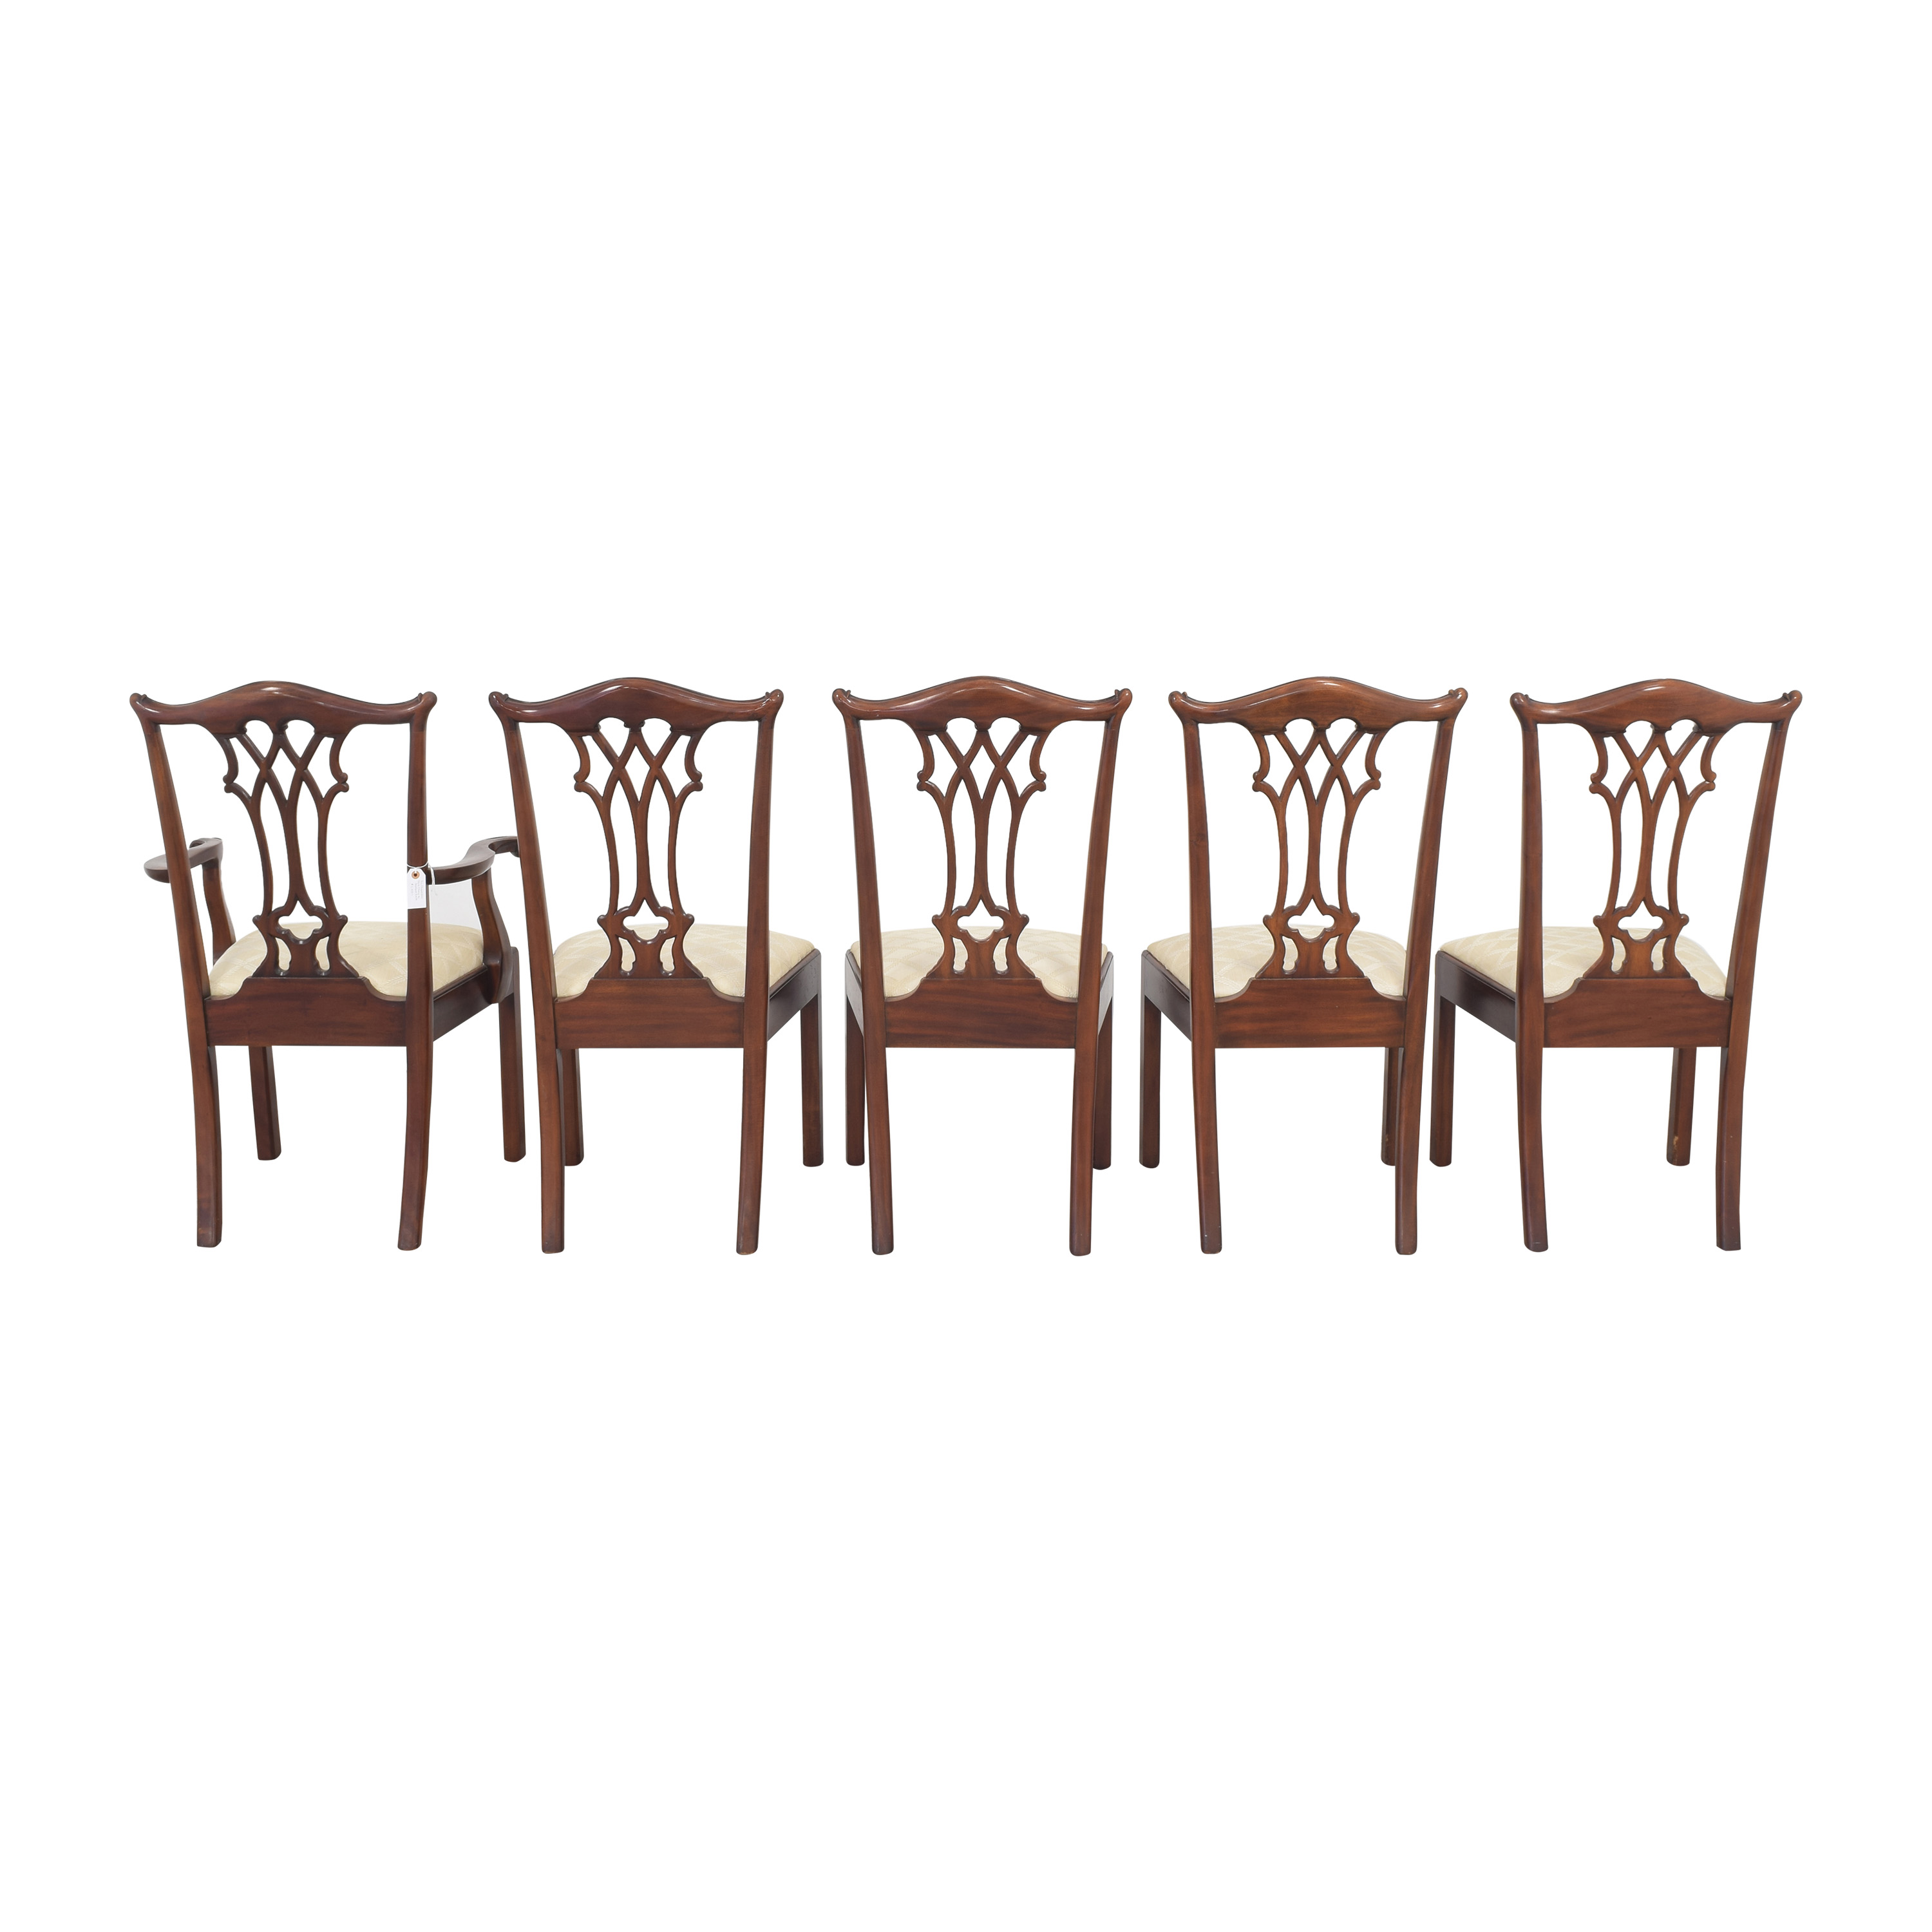 Maitland-Smith Maitland-Smith Connecticut Dining Chairs coupon